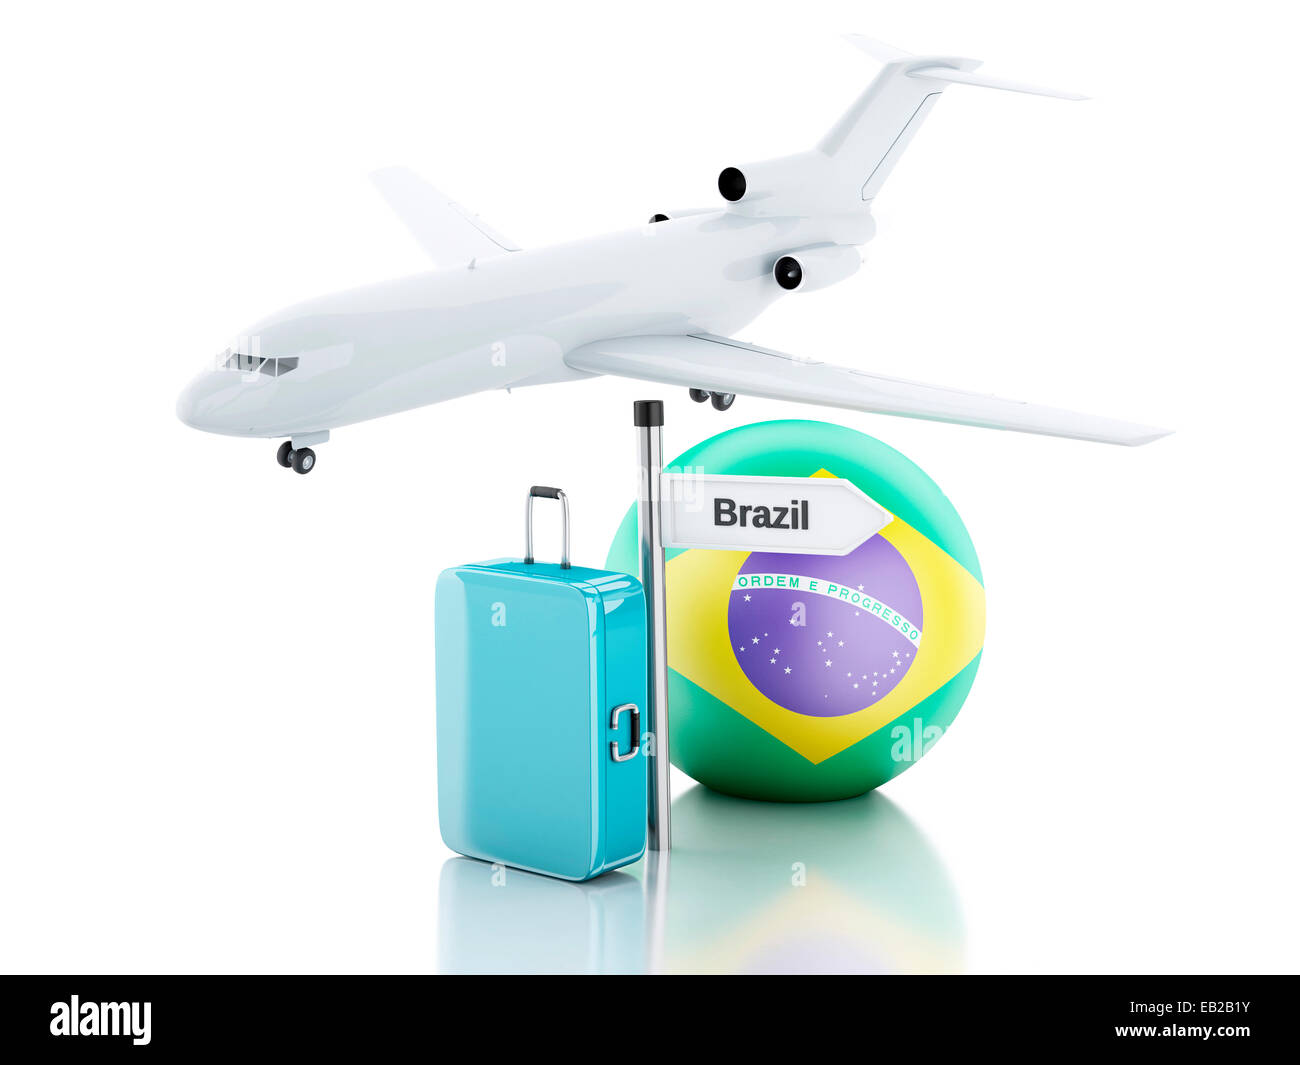 Airplane on world map three dimensional stock photos airplane on suitcase plane and brazil flag icon 3d illustration on gumiabroncs Choice Image